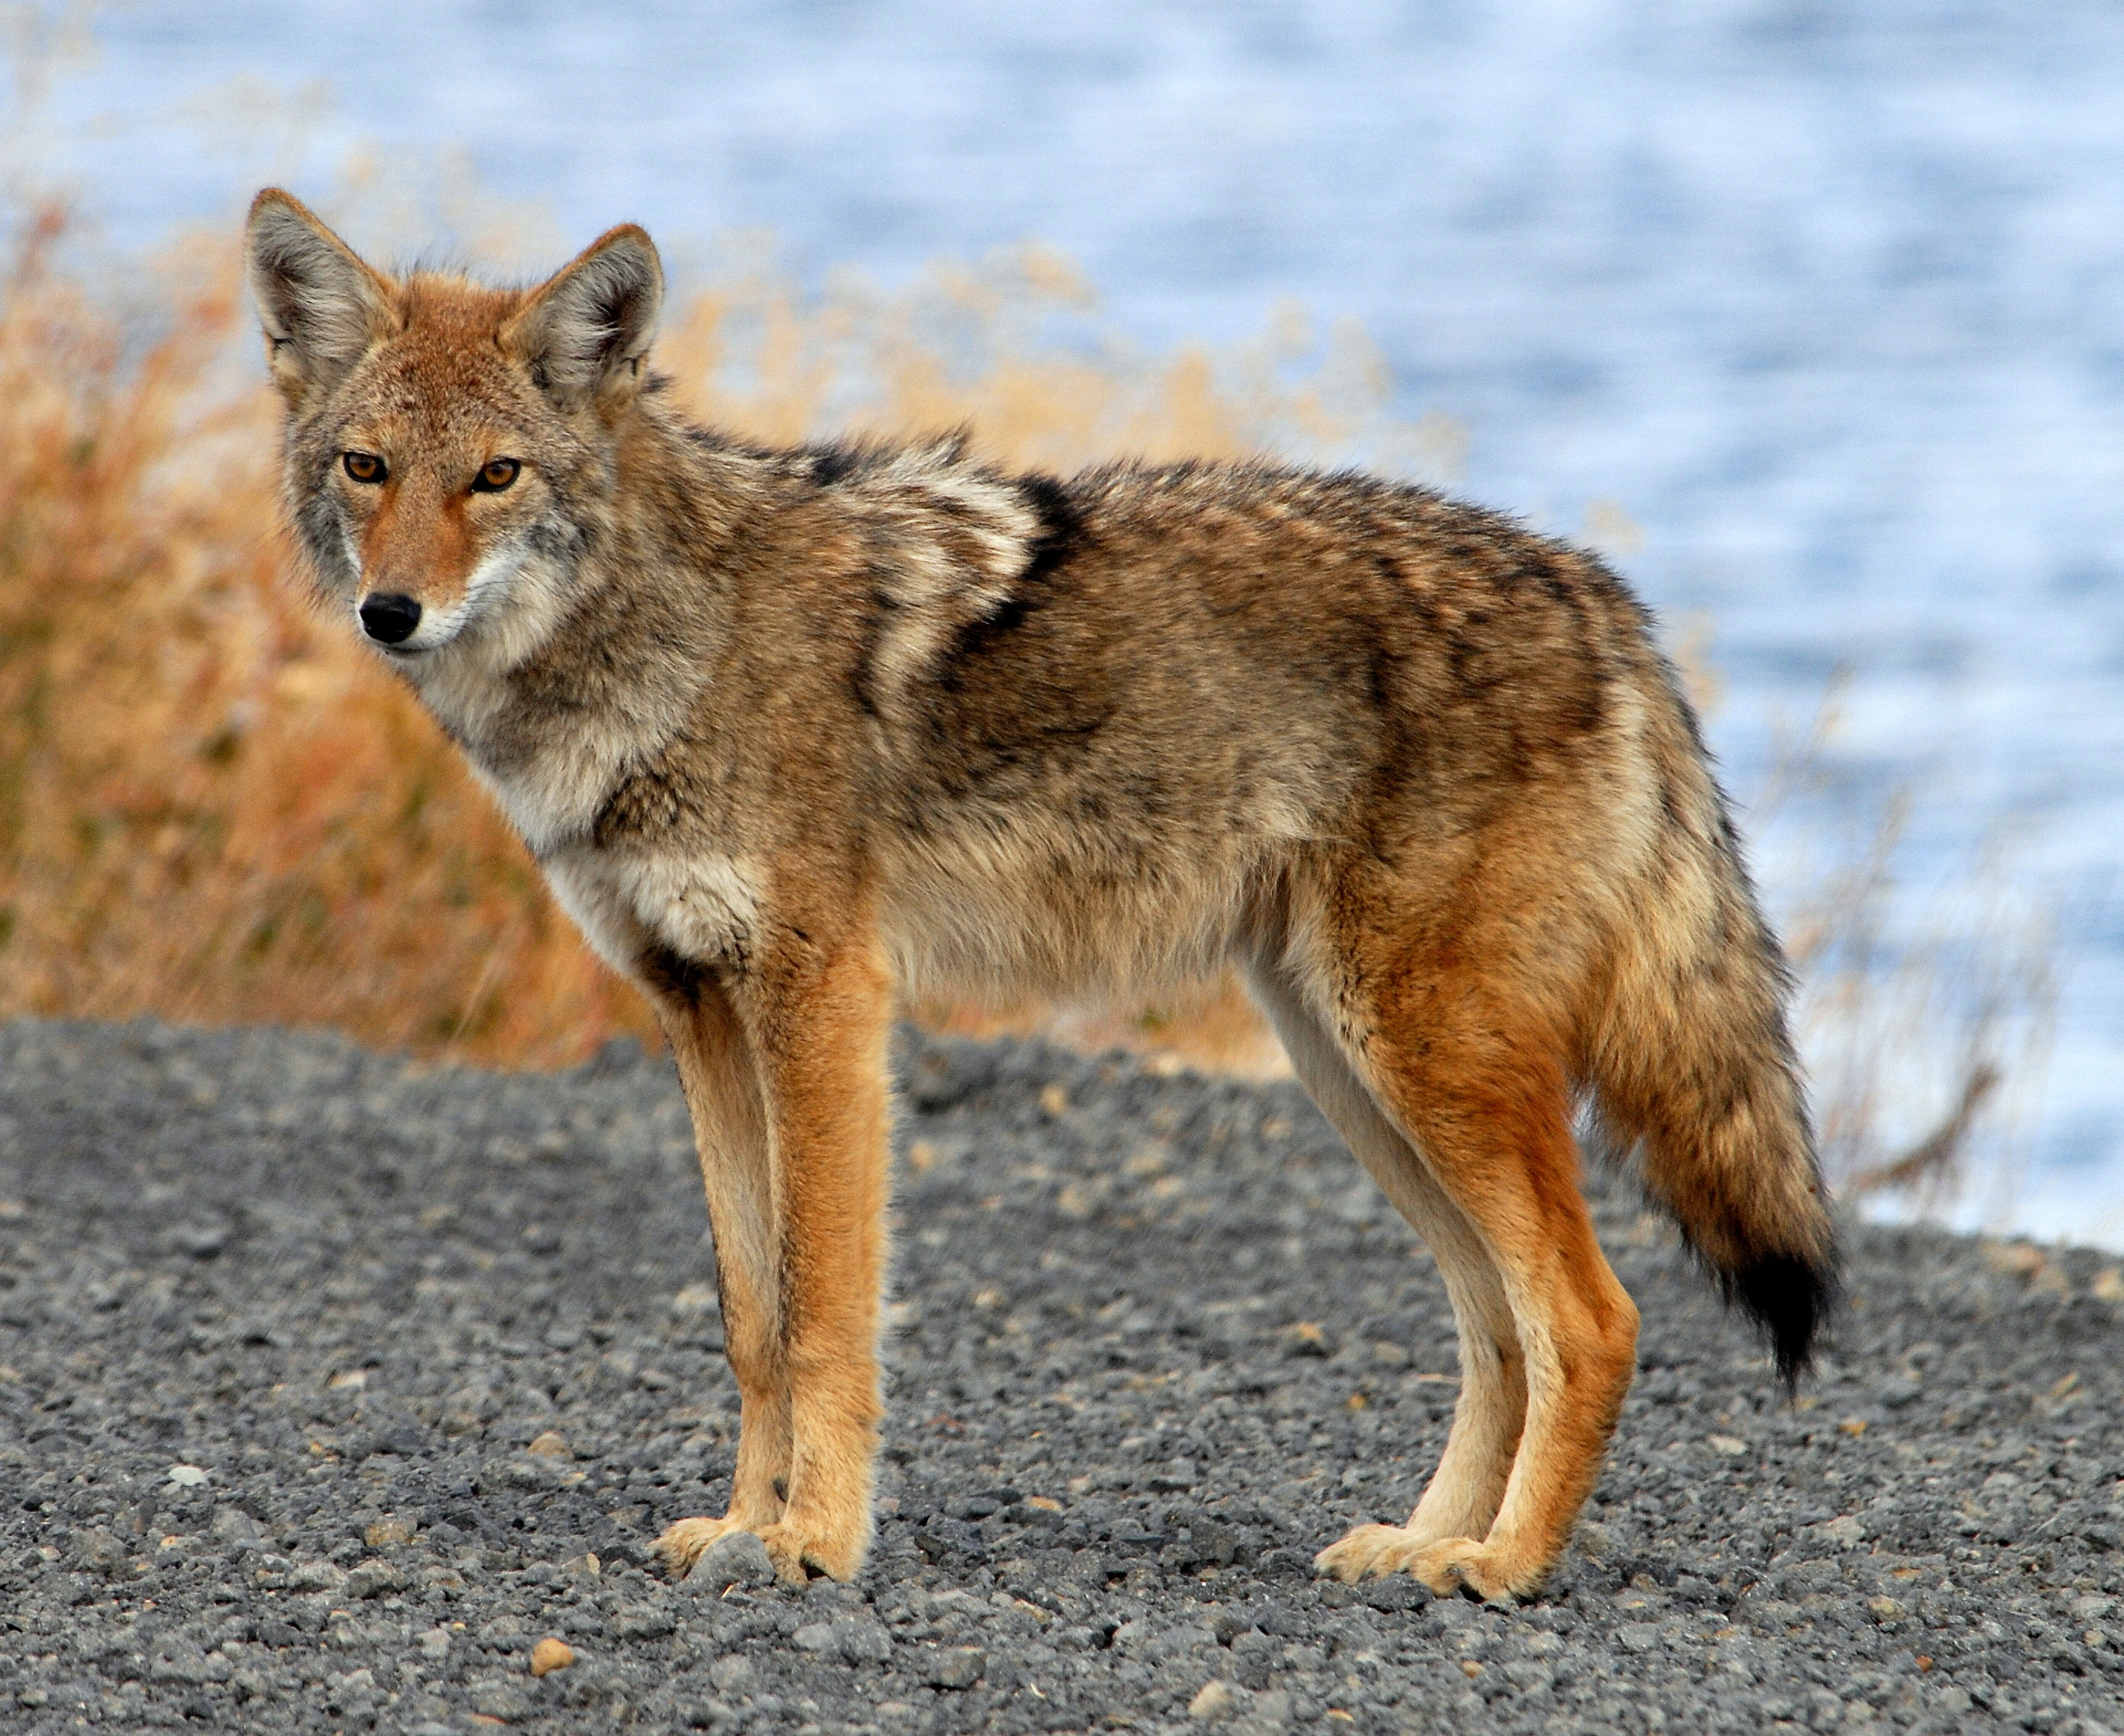 File:Coyote Tule Lake CA.jpg - Wikimedia Commons